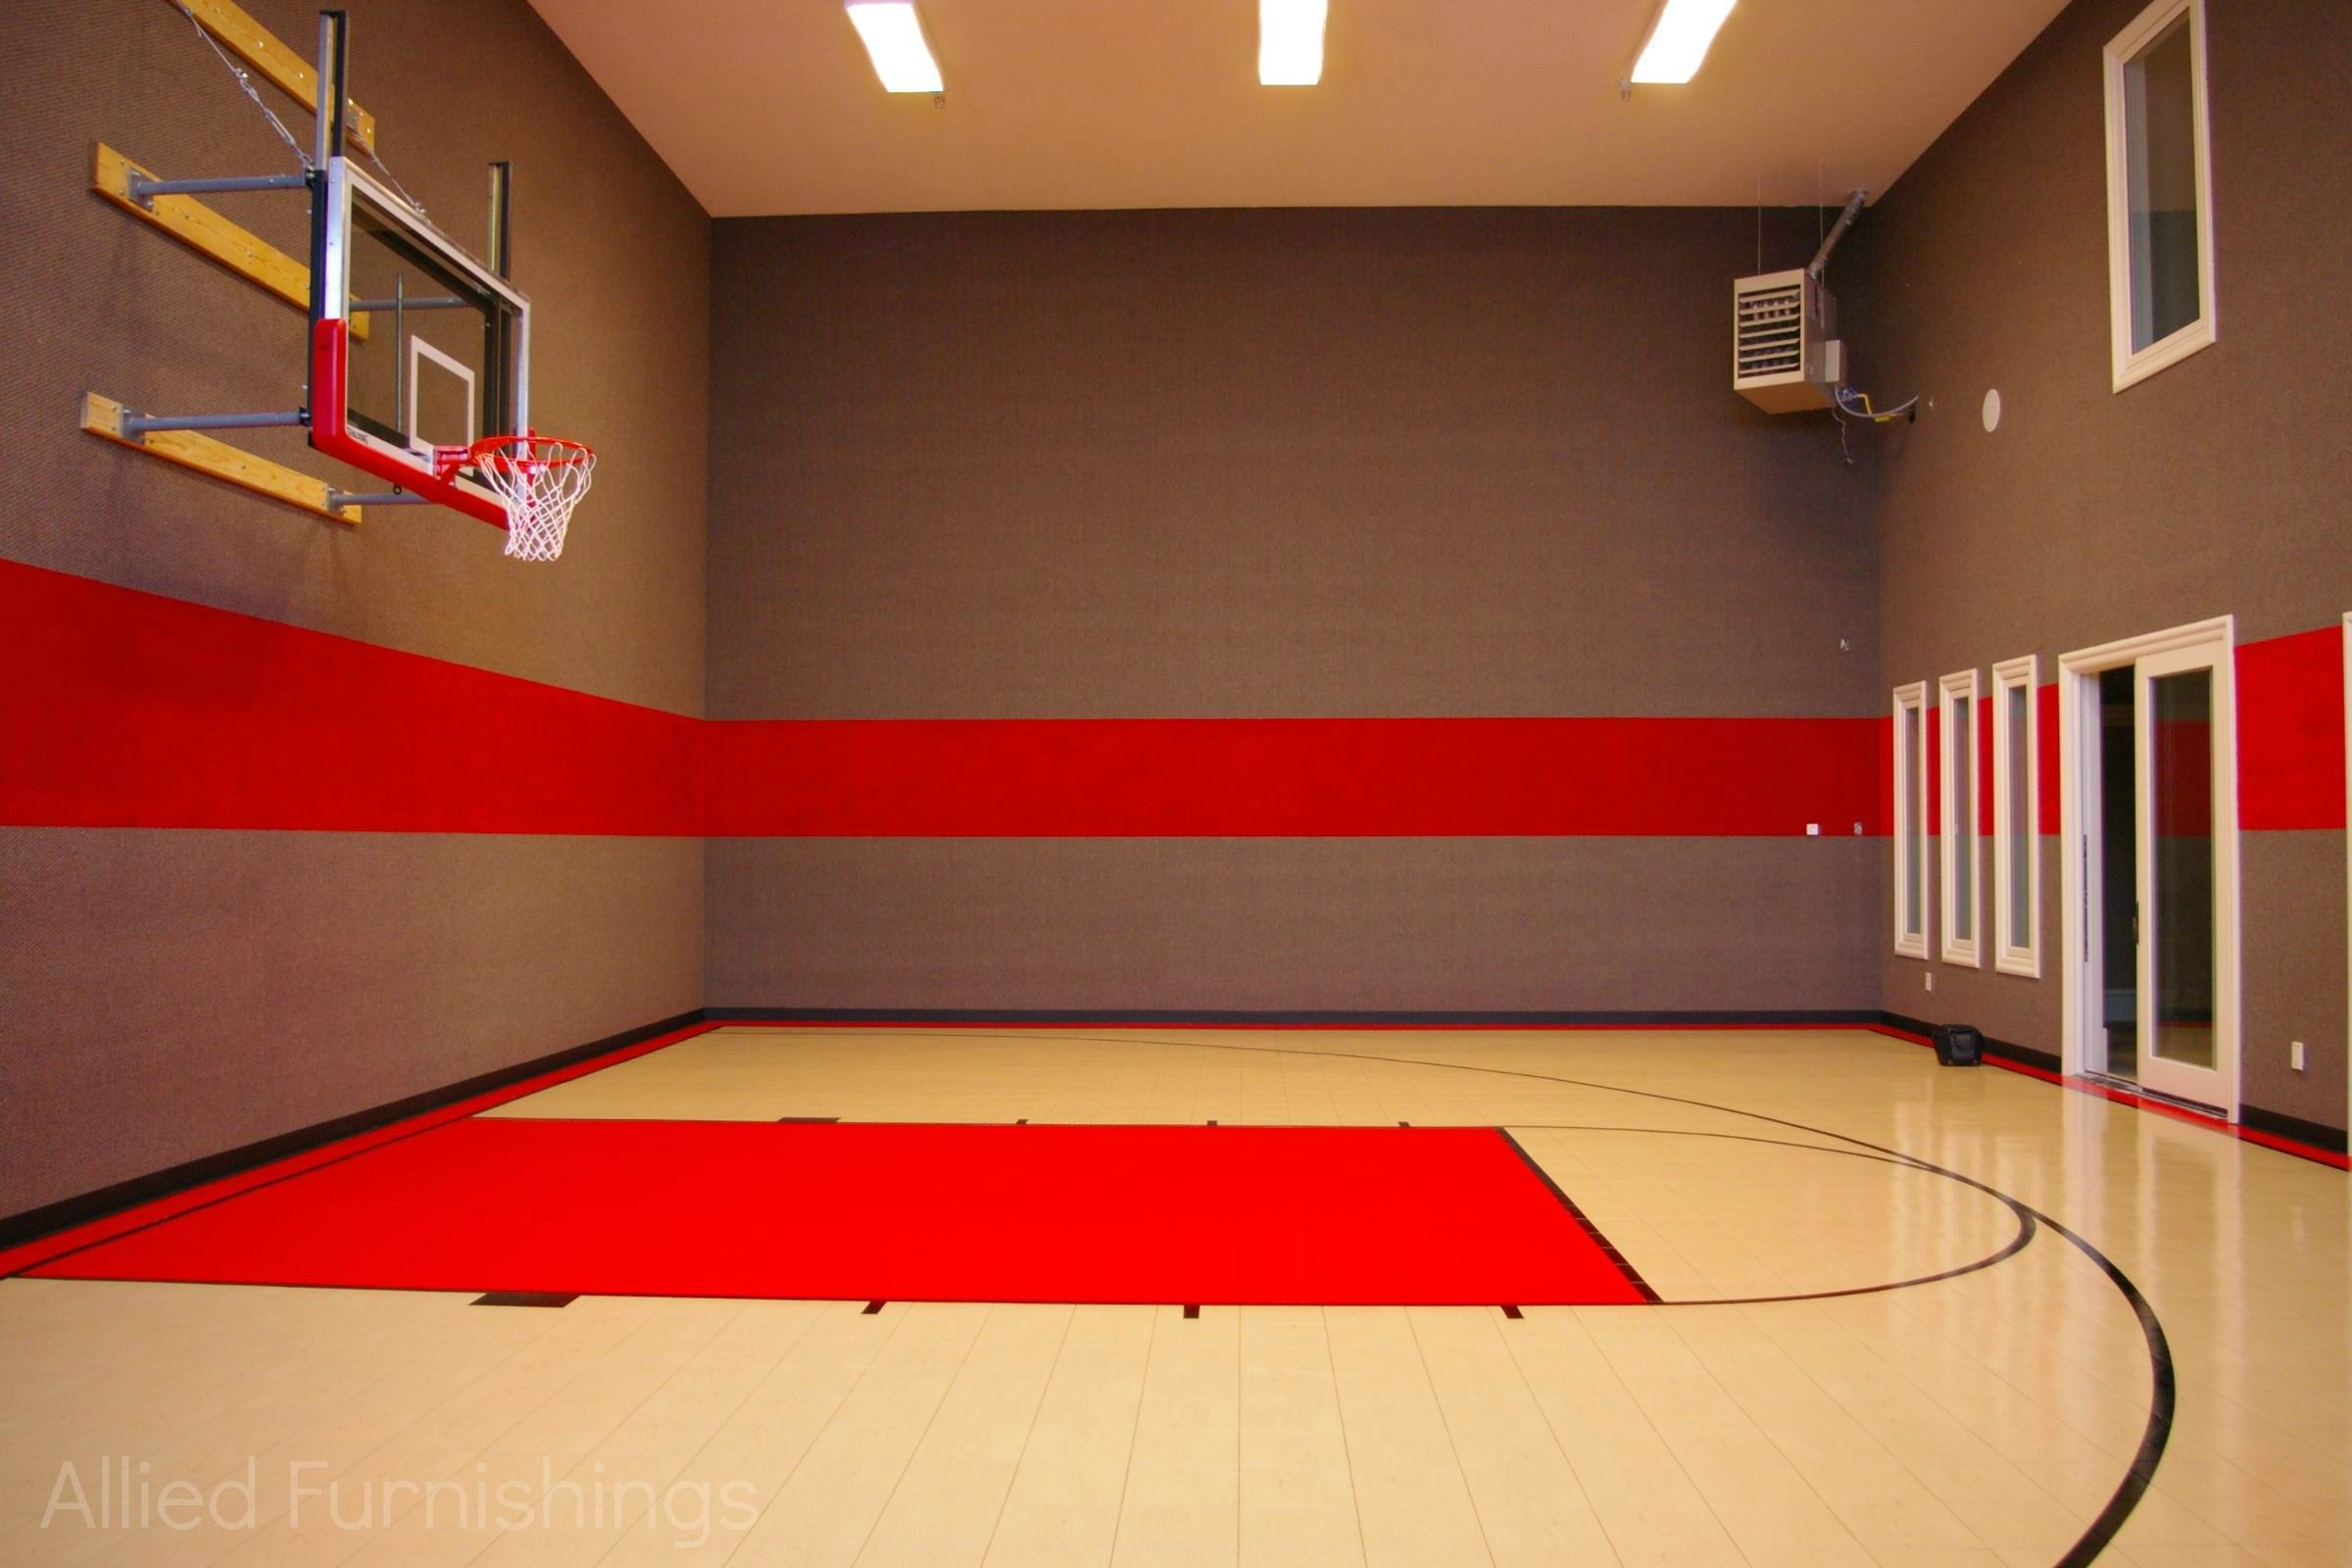 Indoor Sports Court | Our Gallery | Pinterest | Basketball court ...